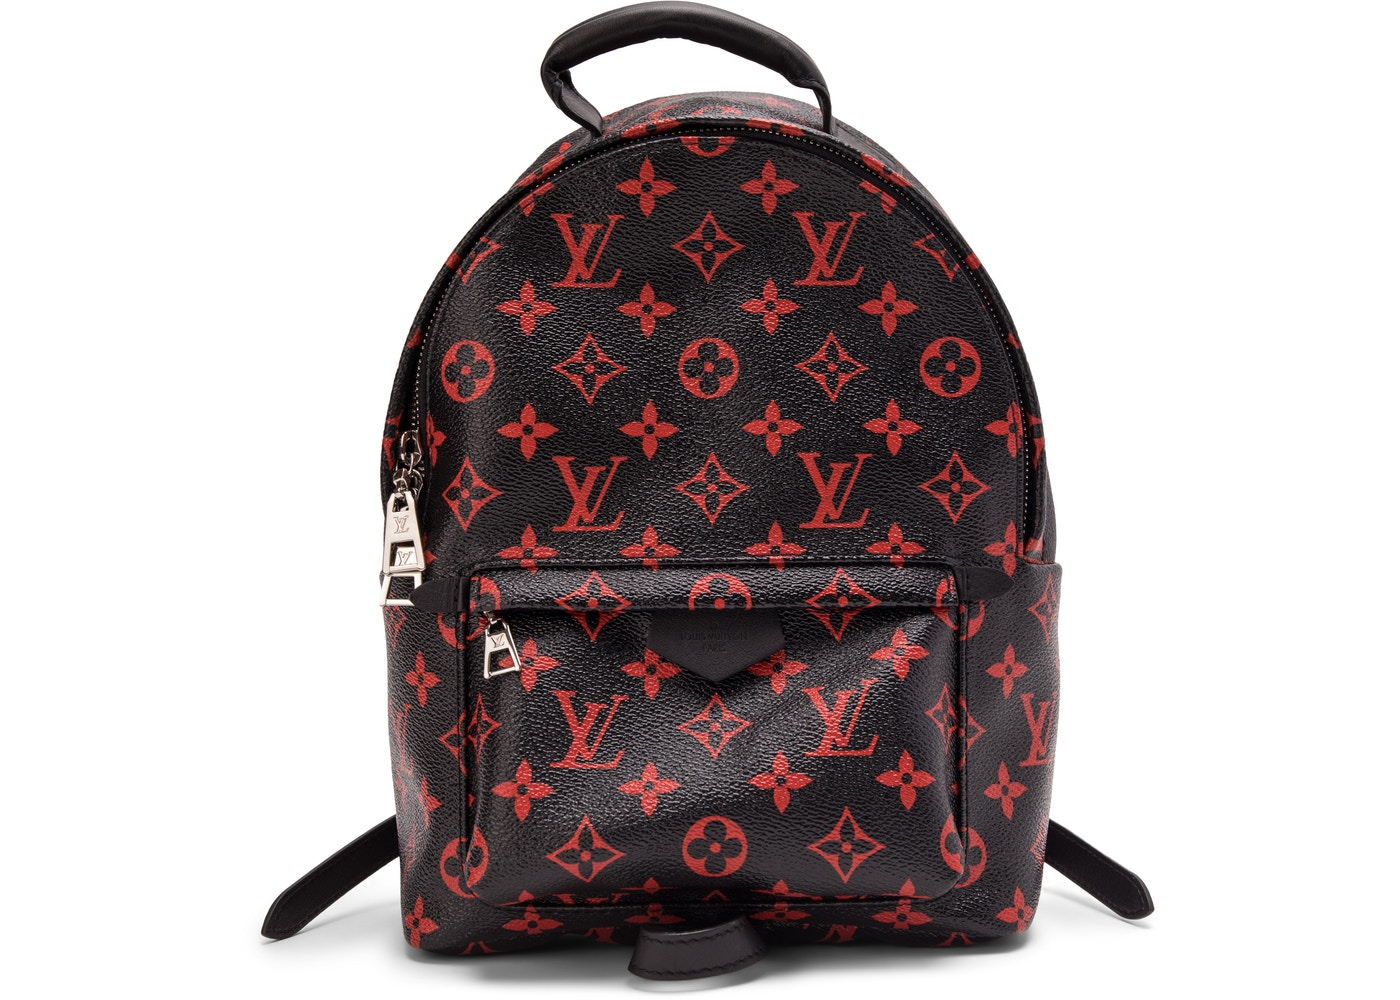 00ac585ce55 Louis Vuitton Backpack Palm Springs Monogram Infrarouge PM Black ...